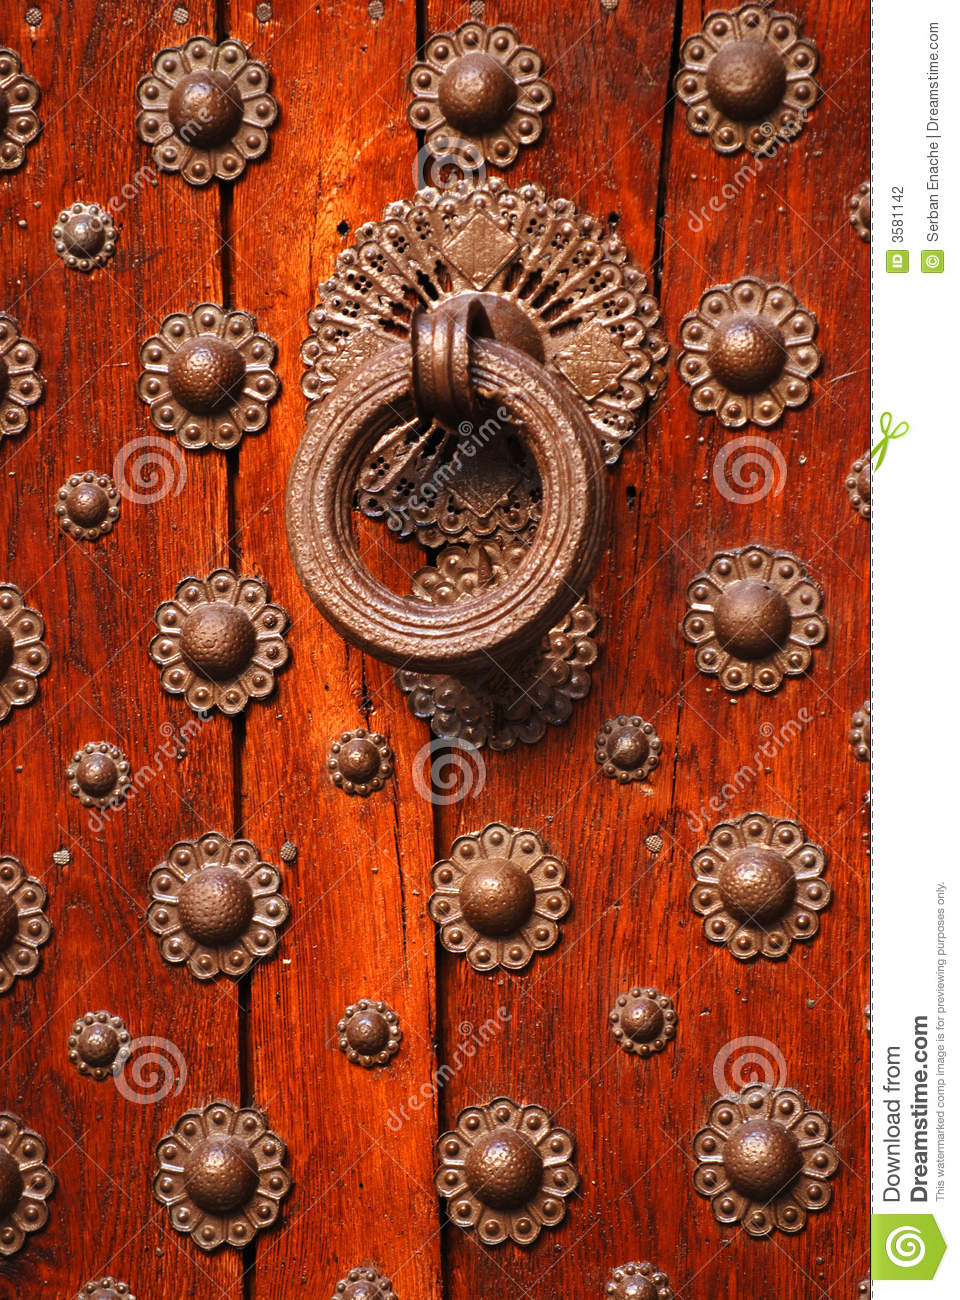 Old Wooden Door And Knocker Stock Photo Image Of Circles Ornate